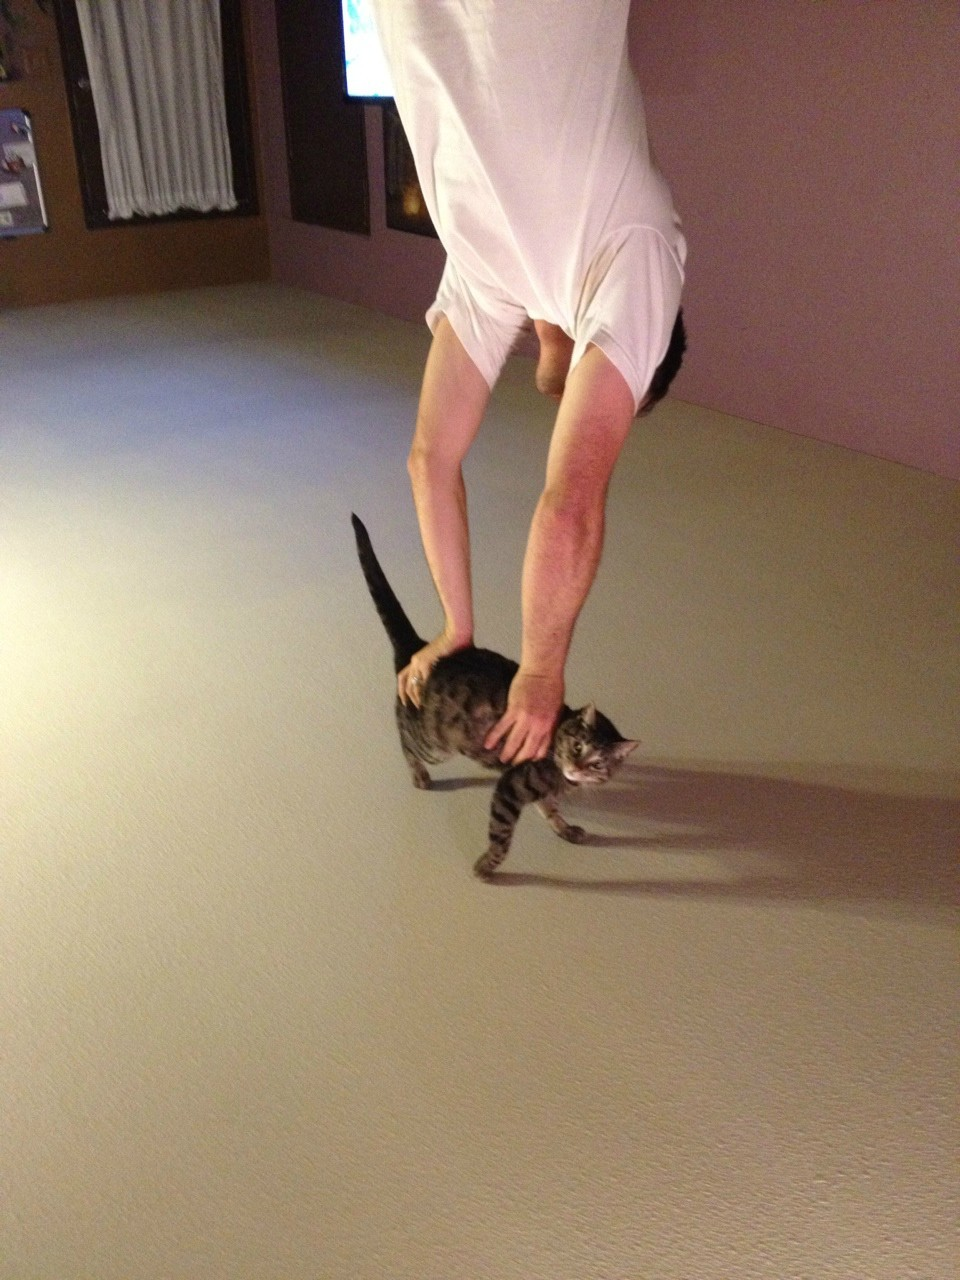 puppiedog:  i thought he was doing a handstand onhis cat